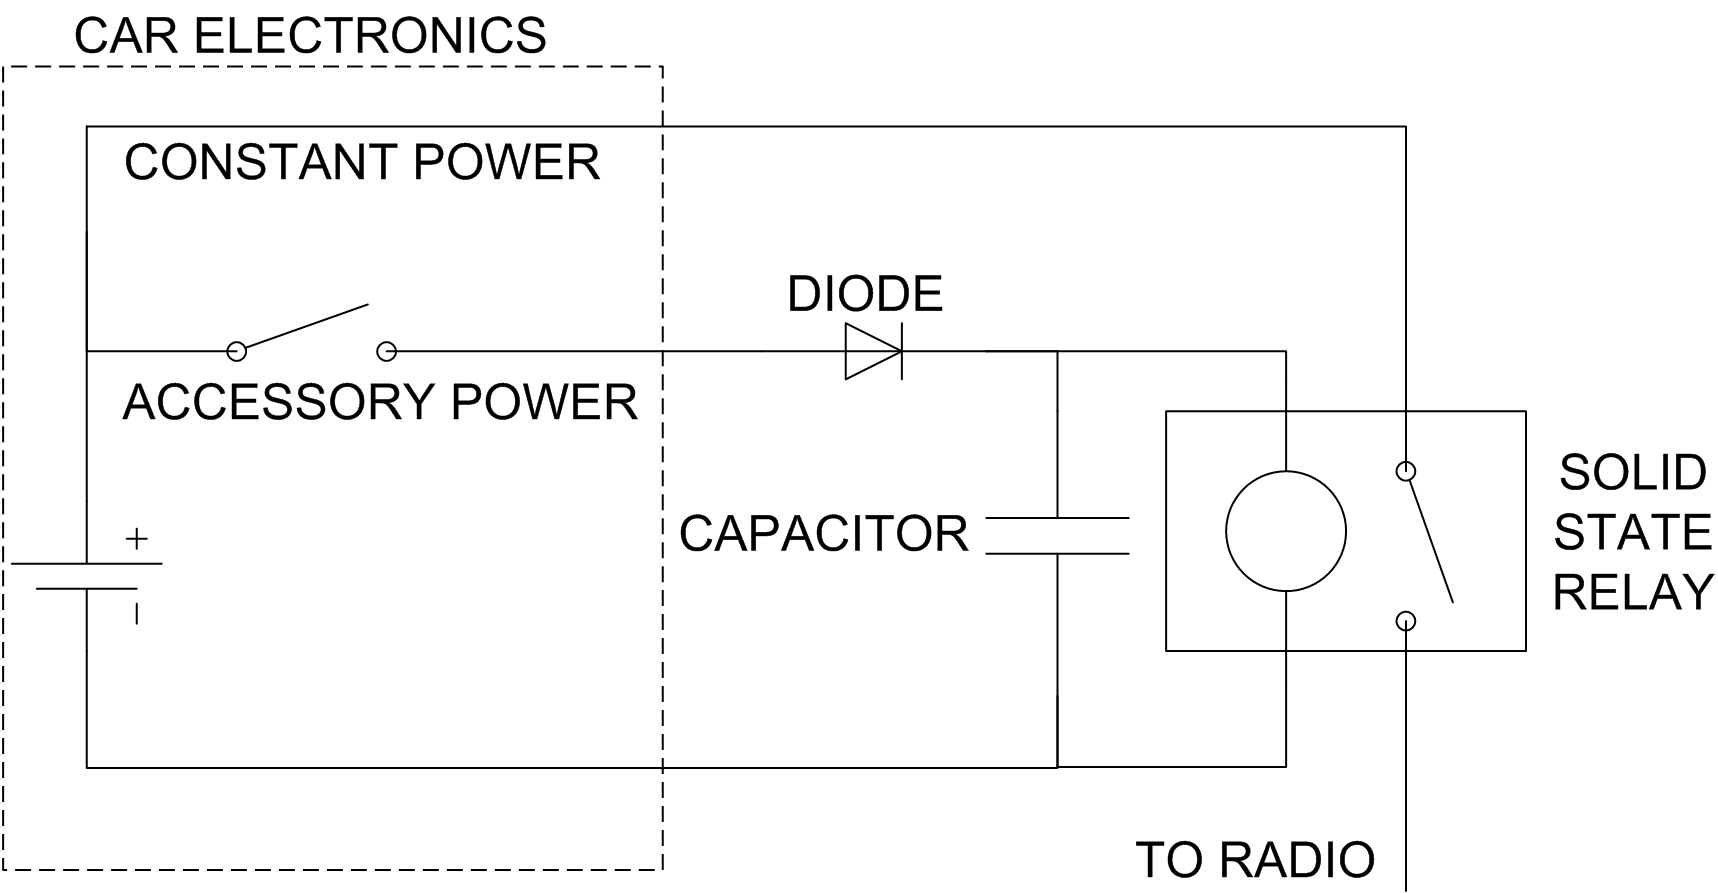 Car Audio Circuit Automotive Circuits 20 Watt Stereo Amplifier Using Tda2005 Diagram How To Keep Your Radio On When You Start